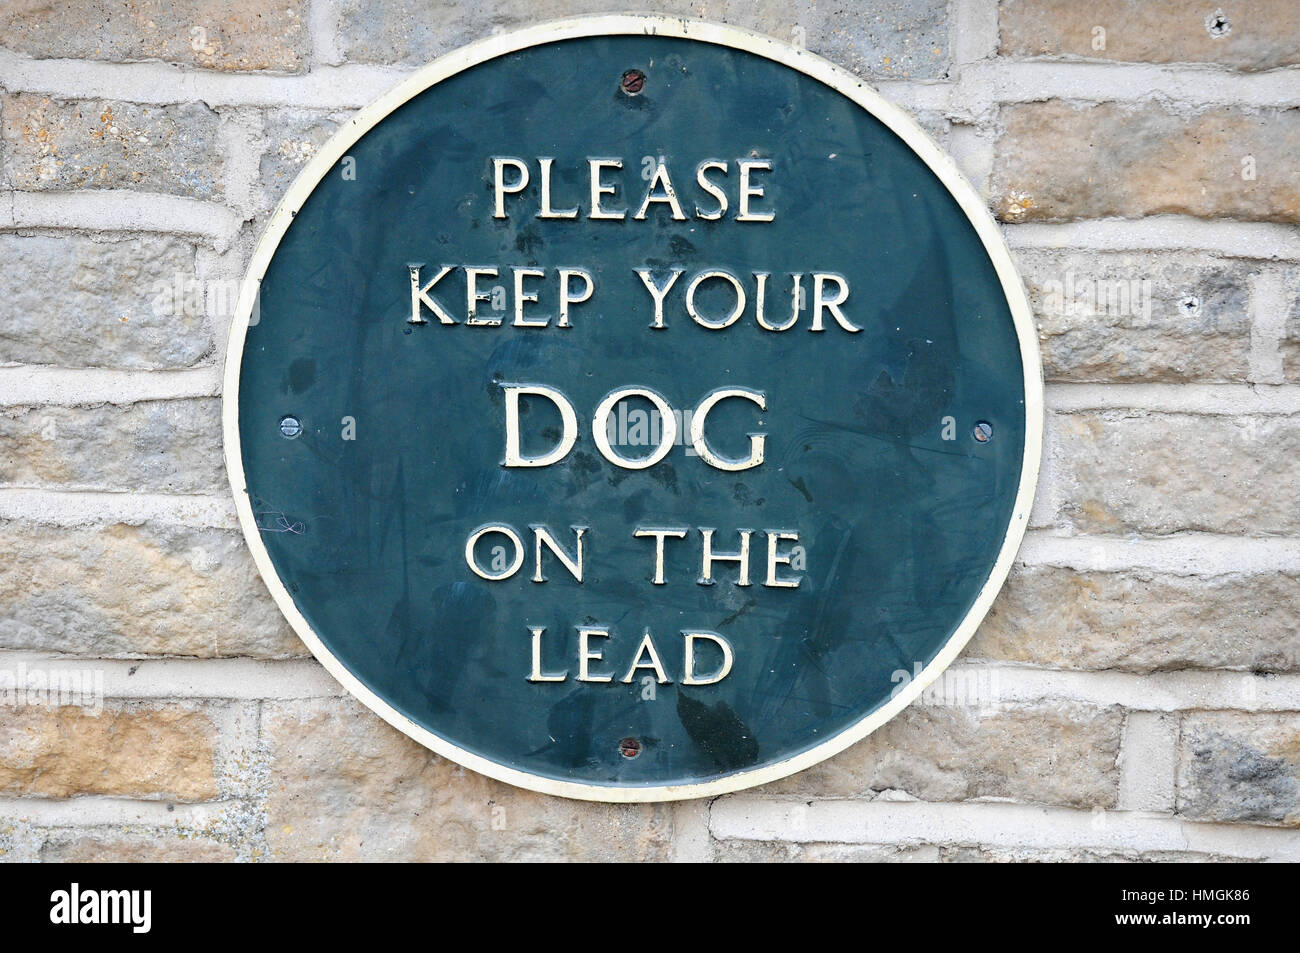 Permanent sign requesting people to keep dogs on the lead.  Barnstaple. - Stock Image